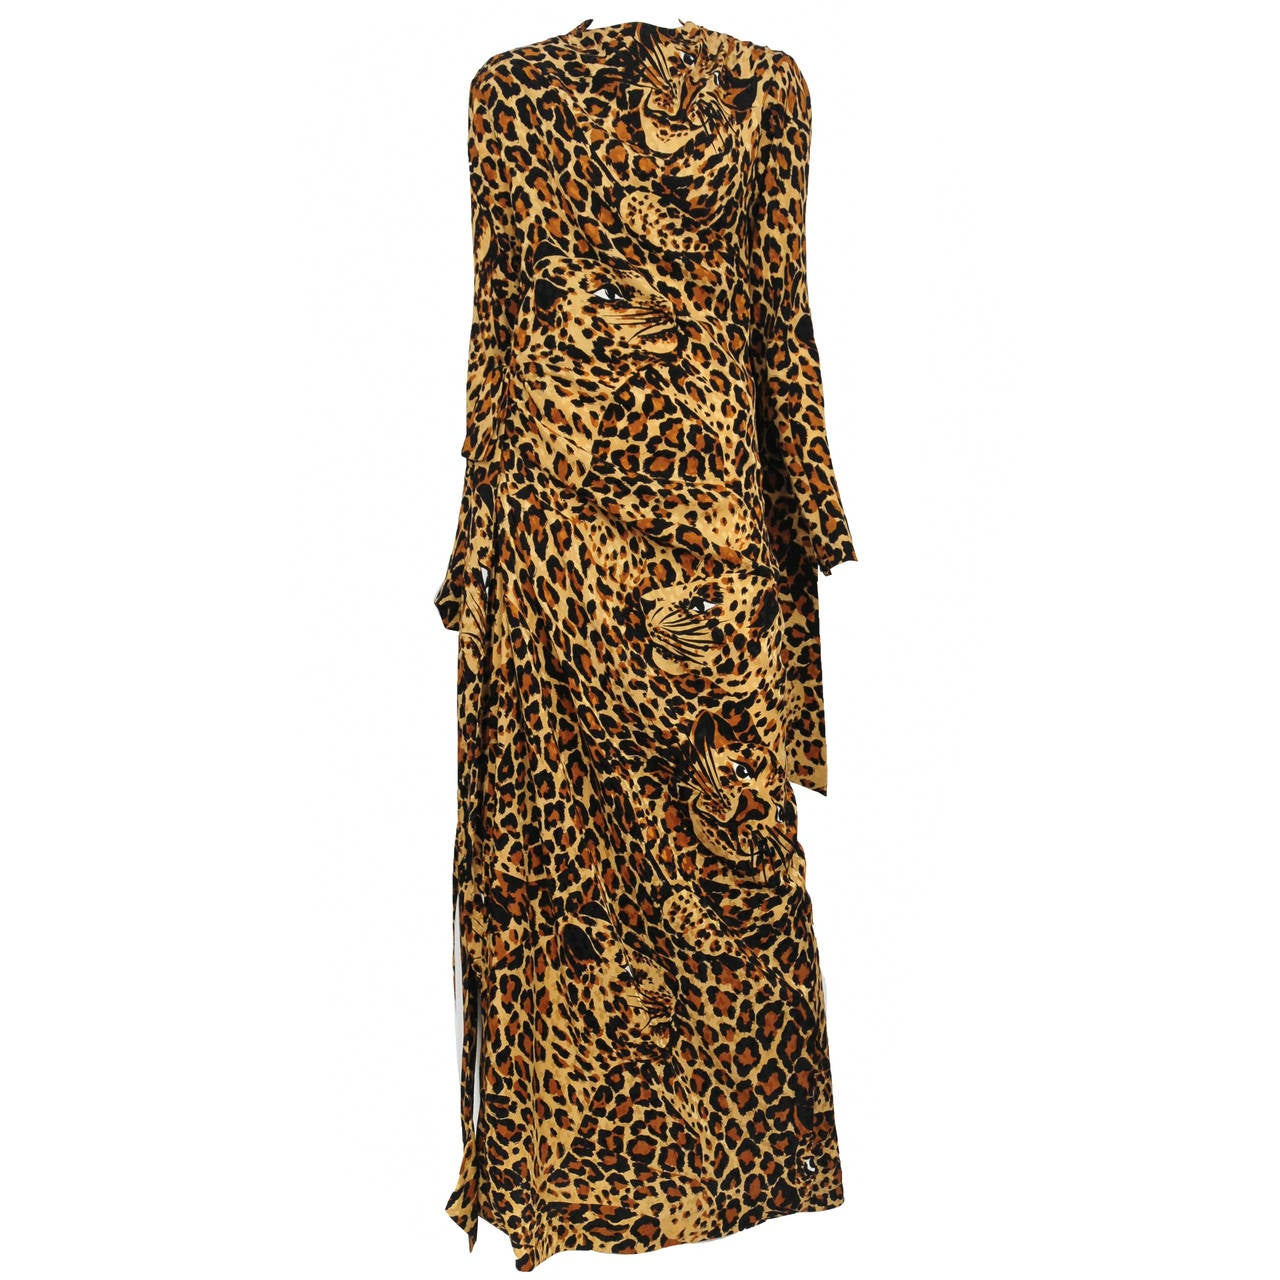 Yves Saint Laurent Iconic Leopard Print Gown at 1stdibs